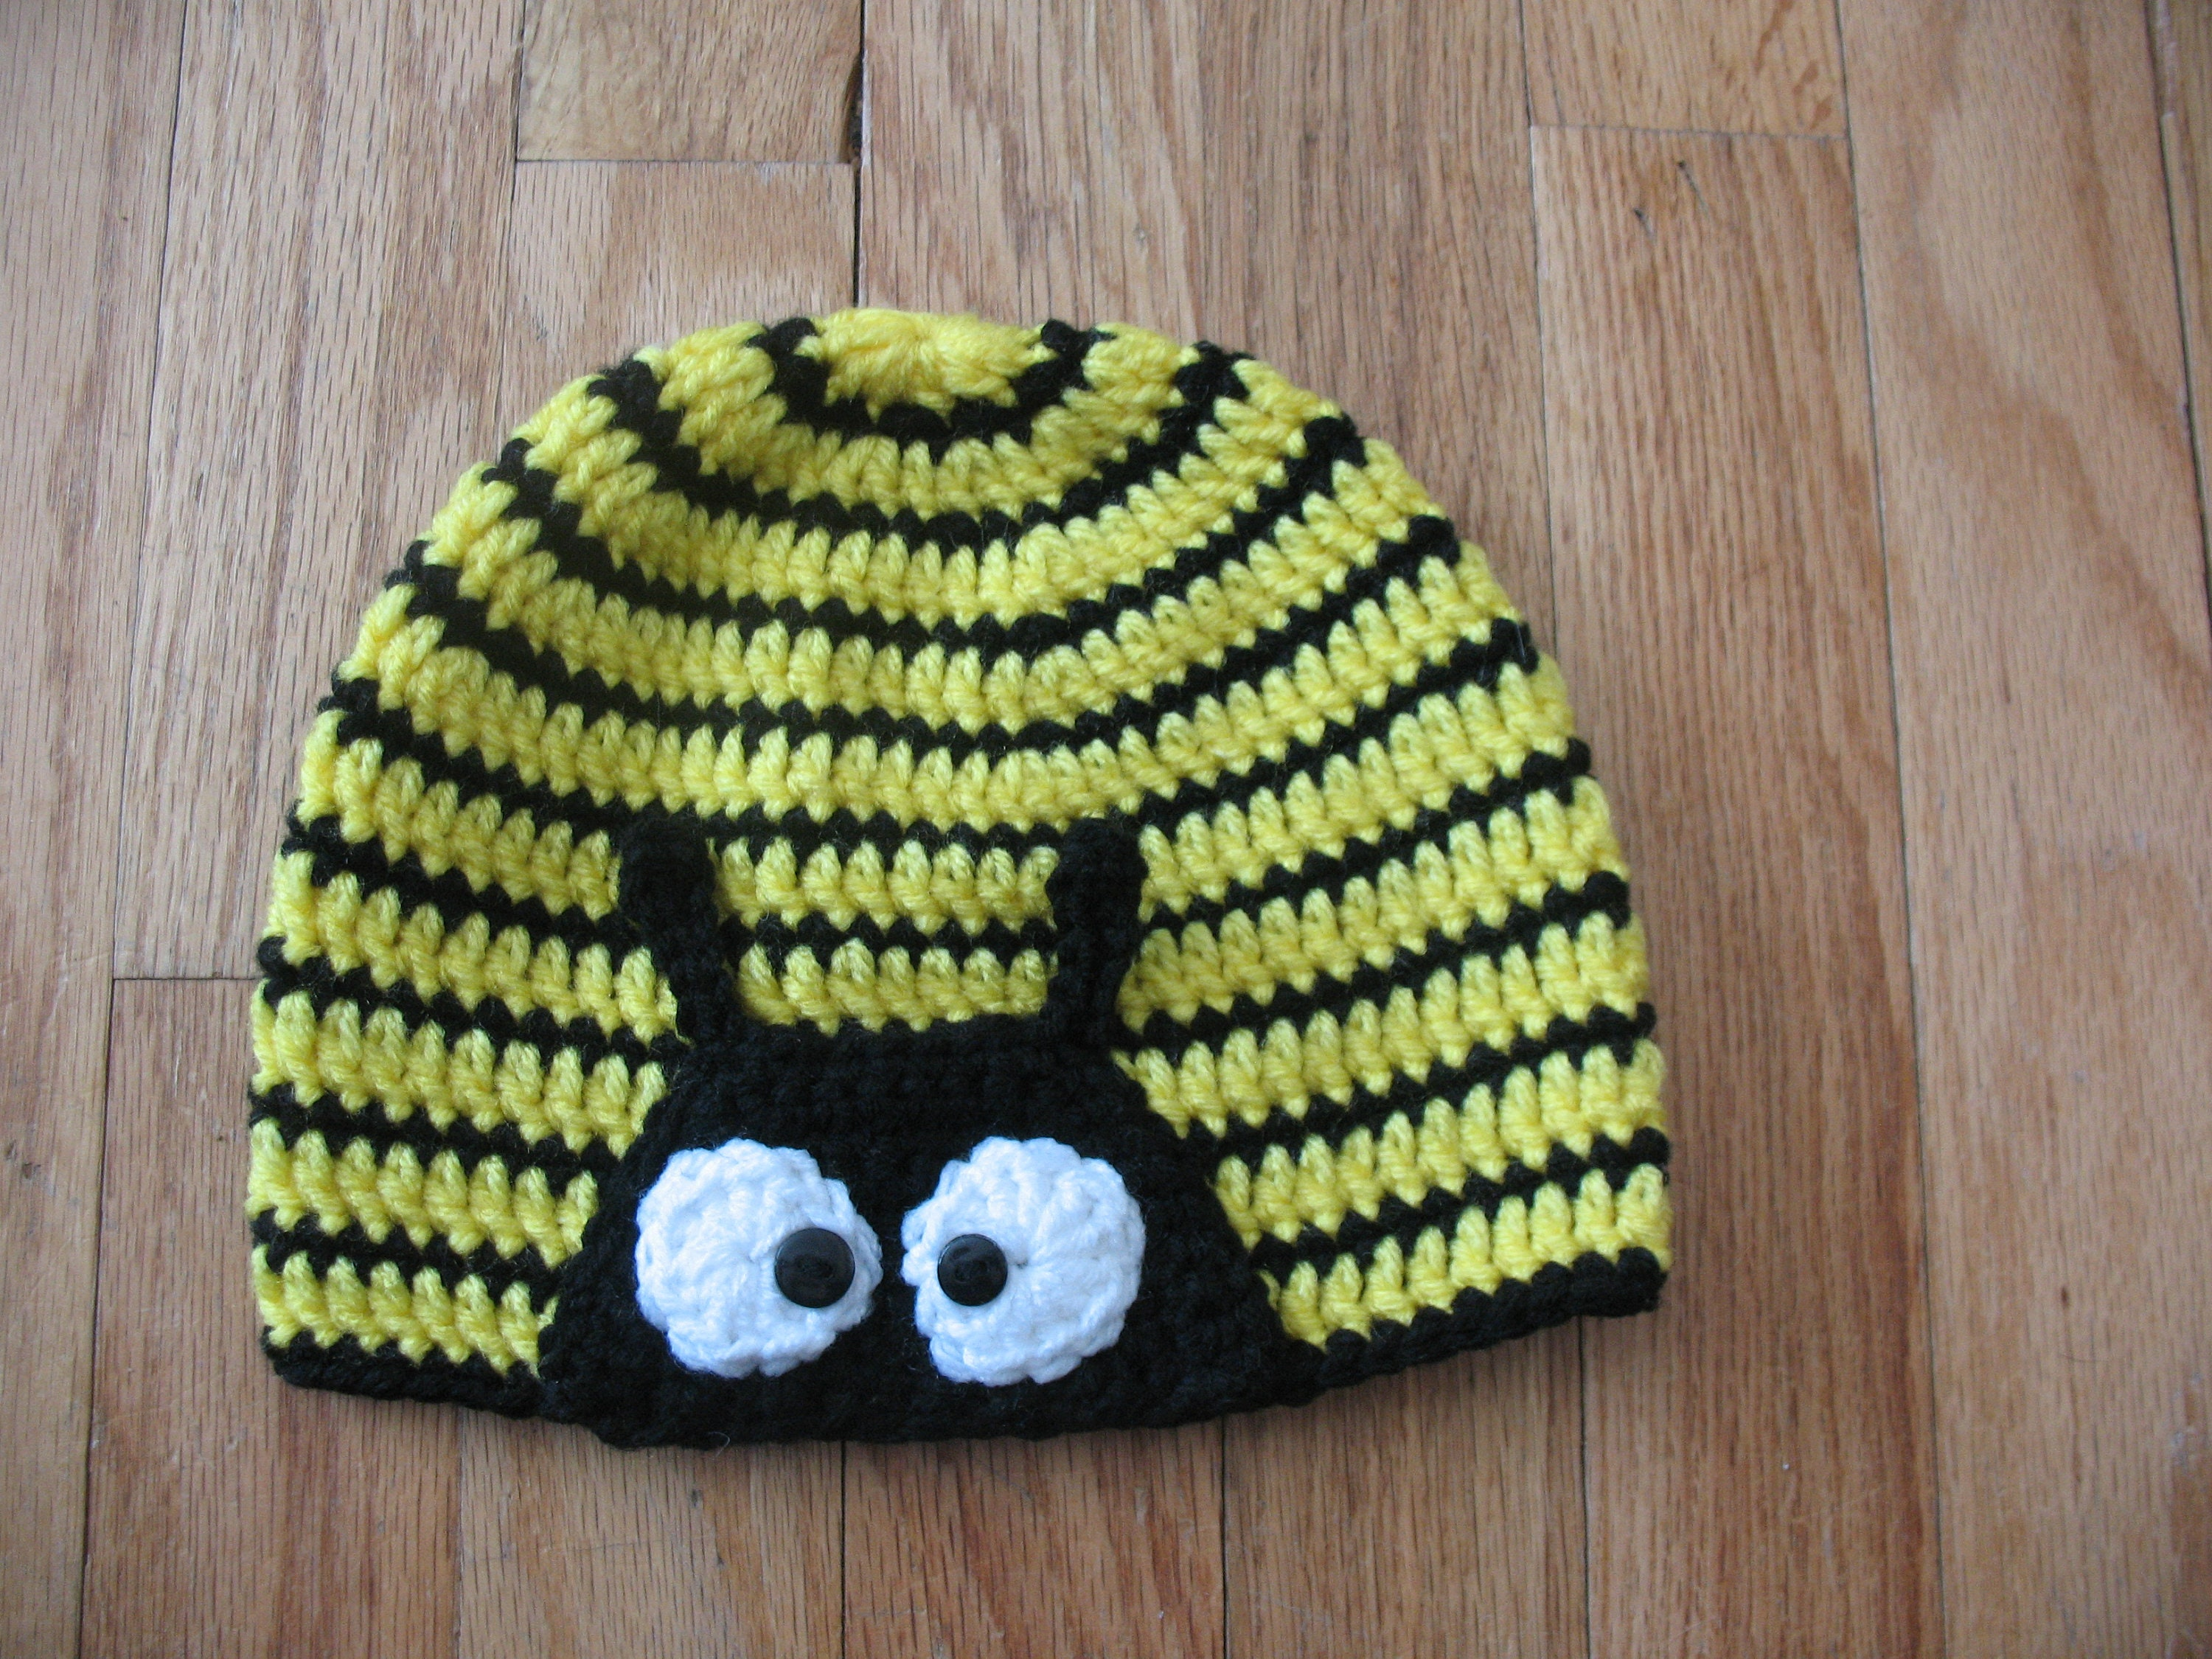 Bumble Bee Crochet Hat Etsy